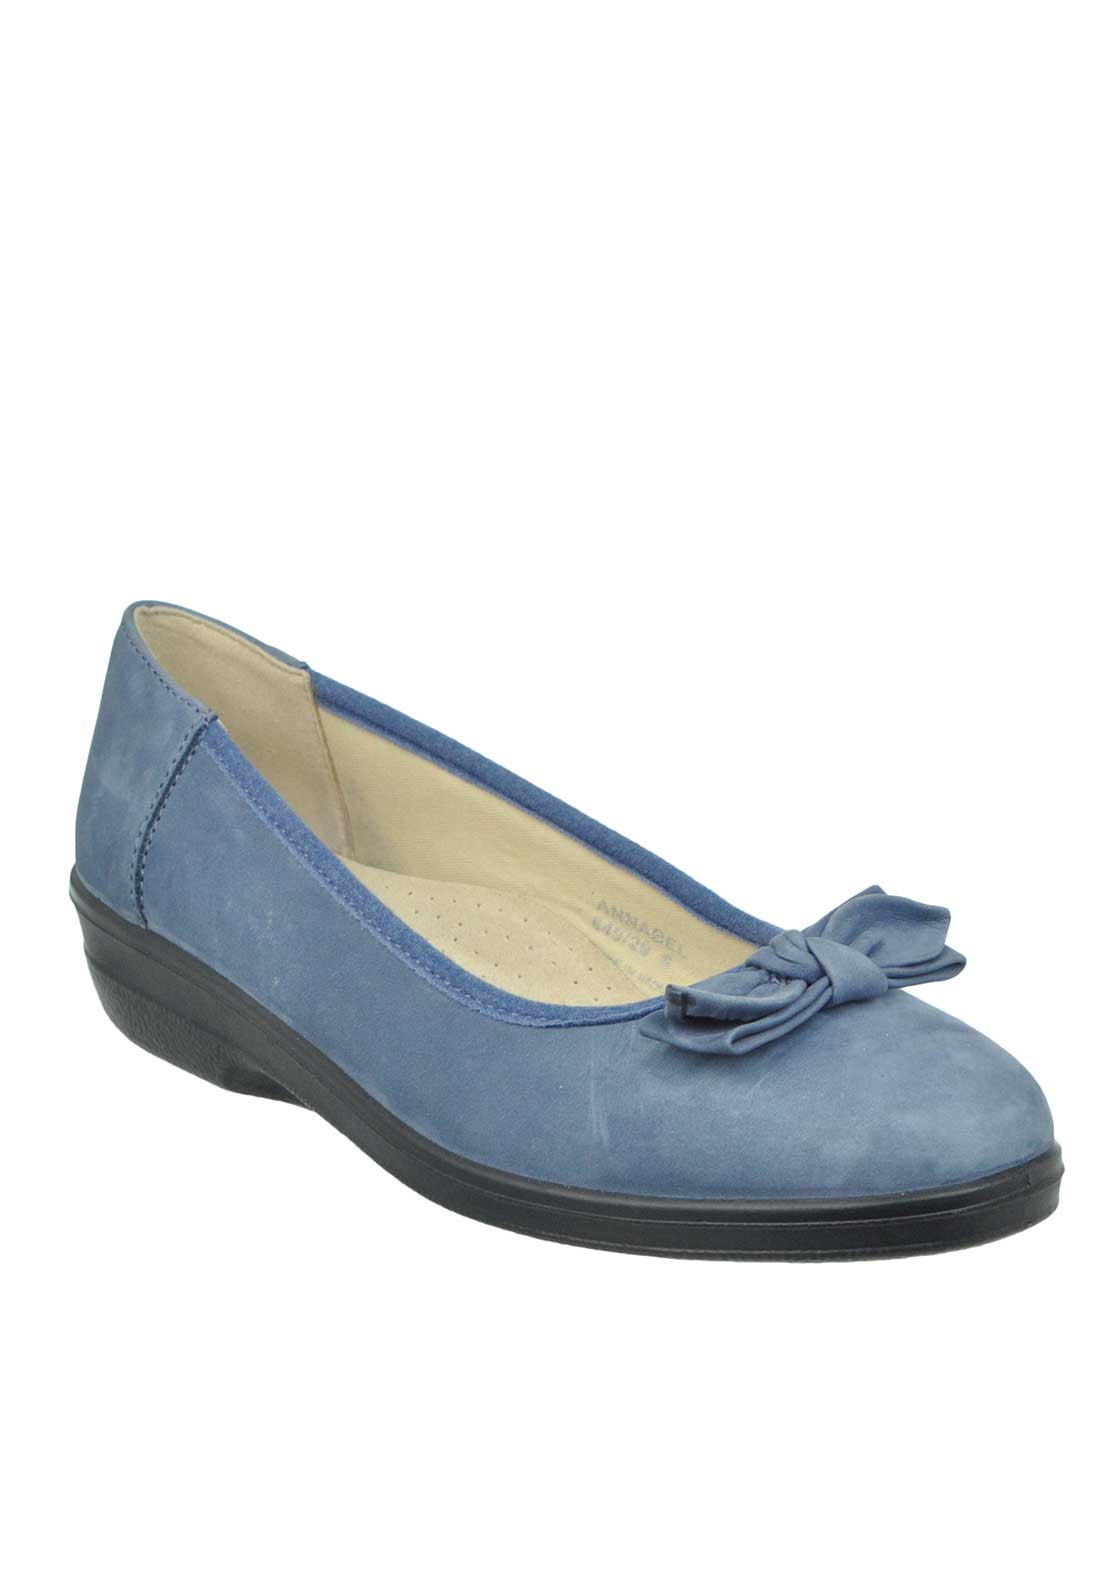 Padders Annabel Suede Bow Pumps, Blue